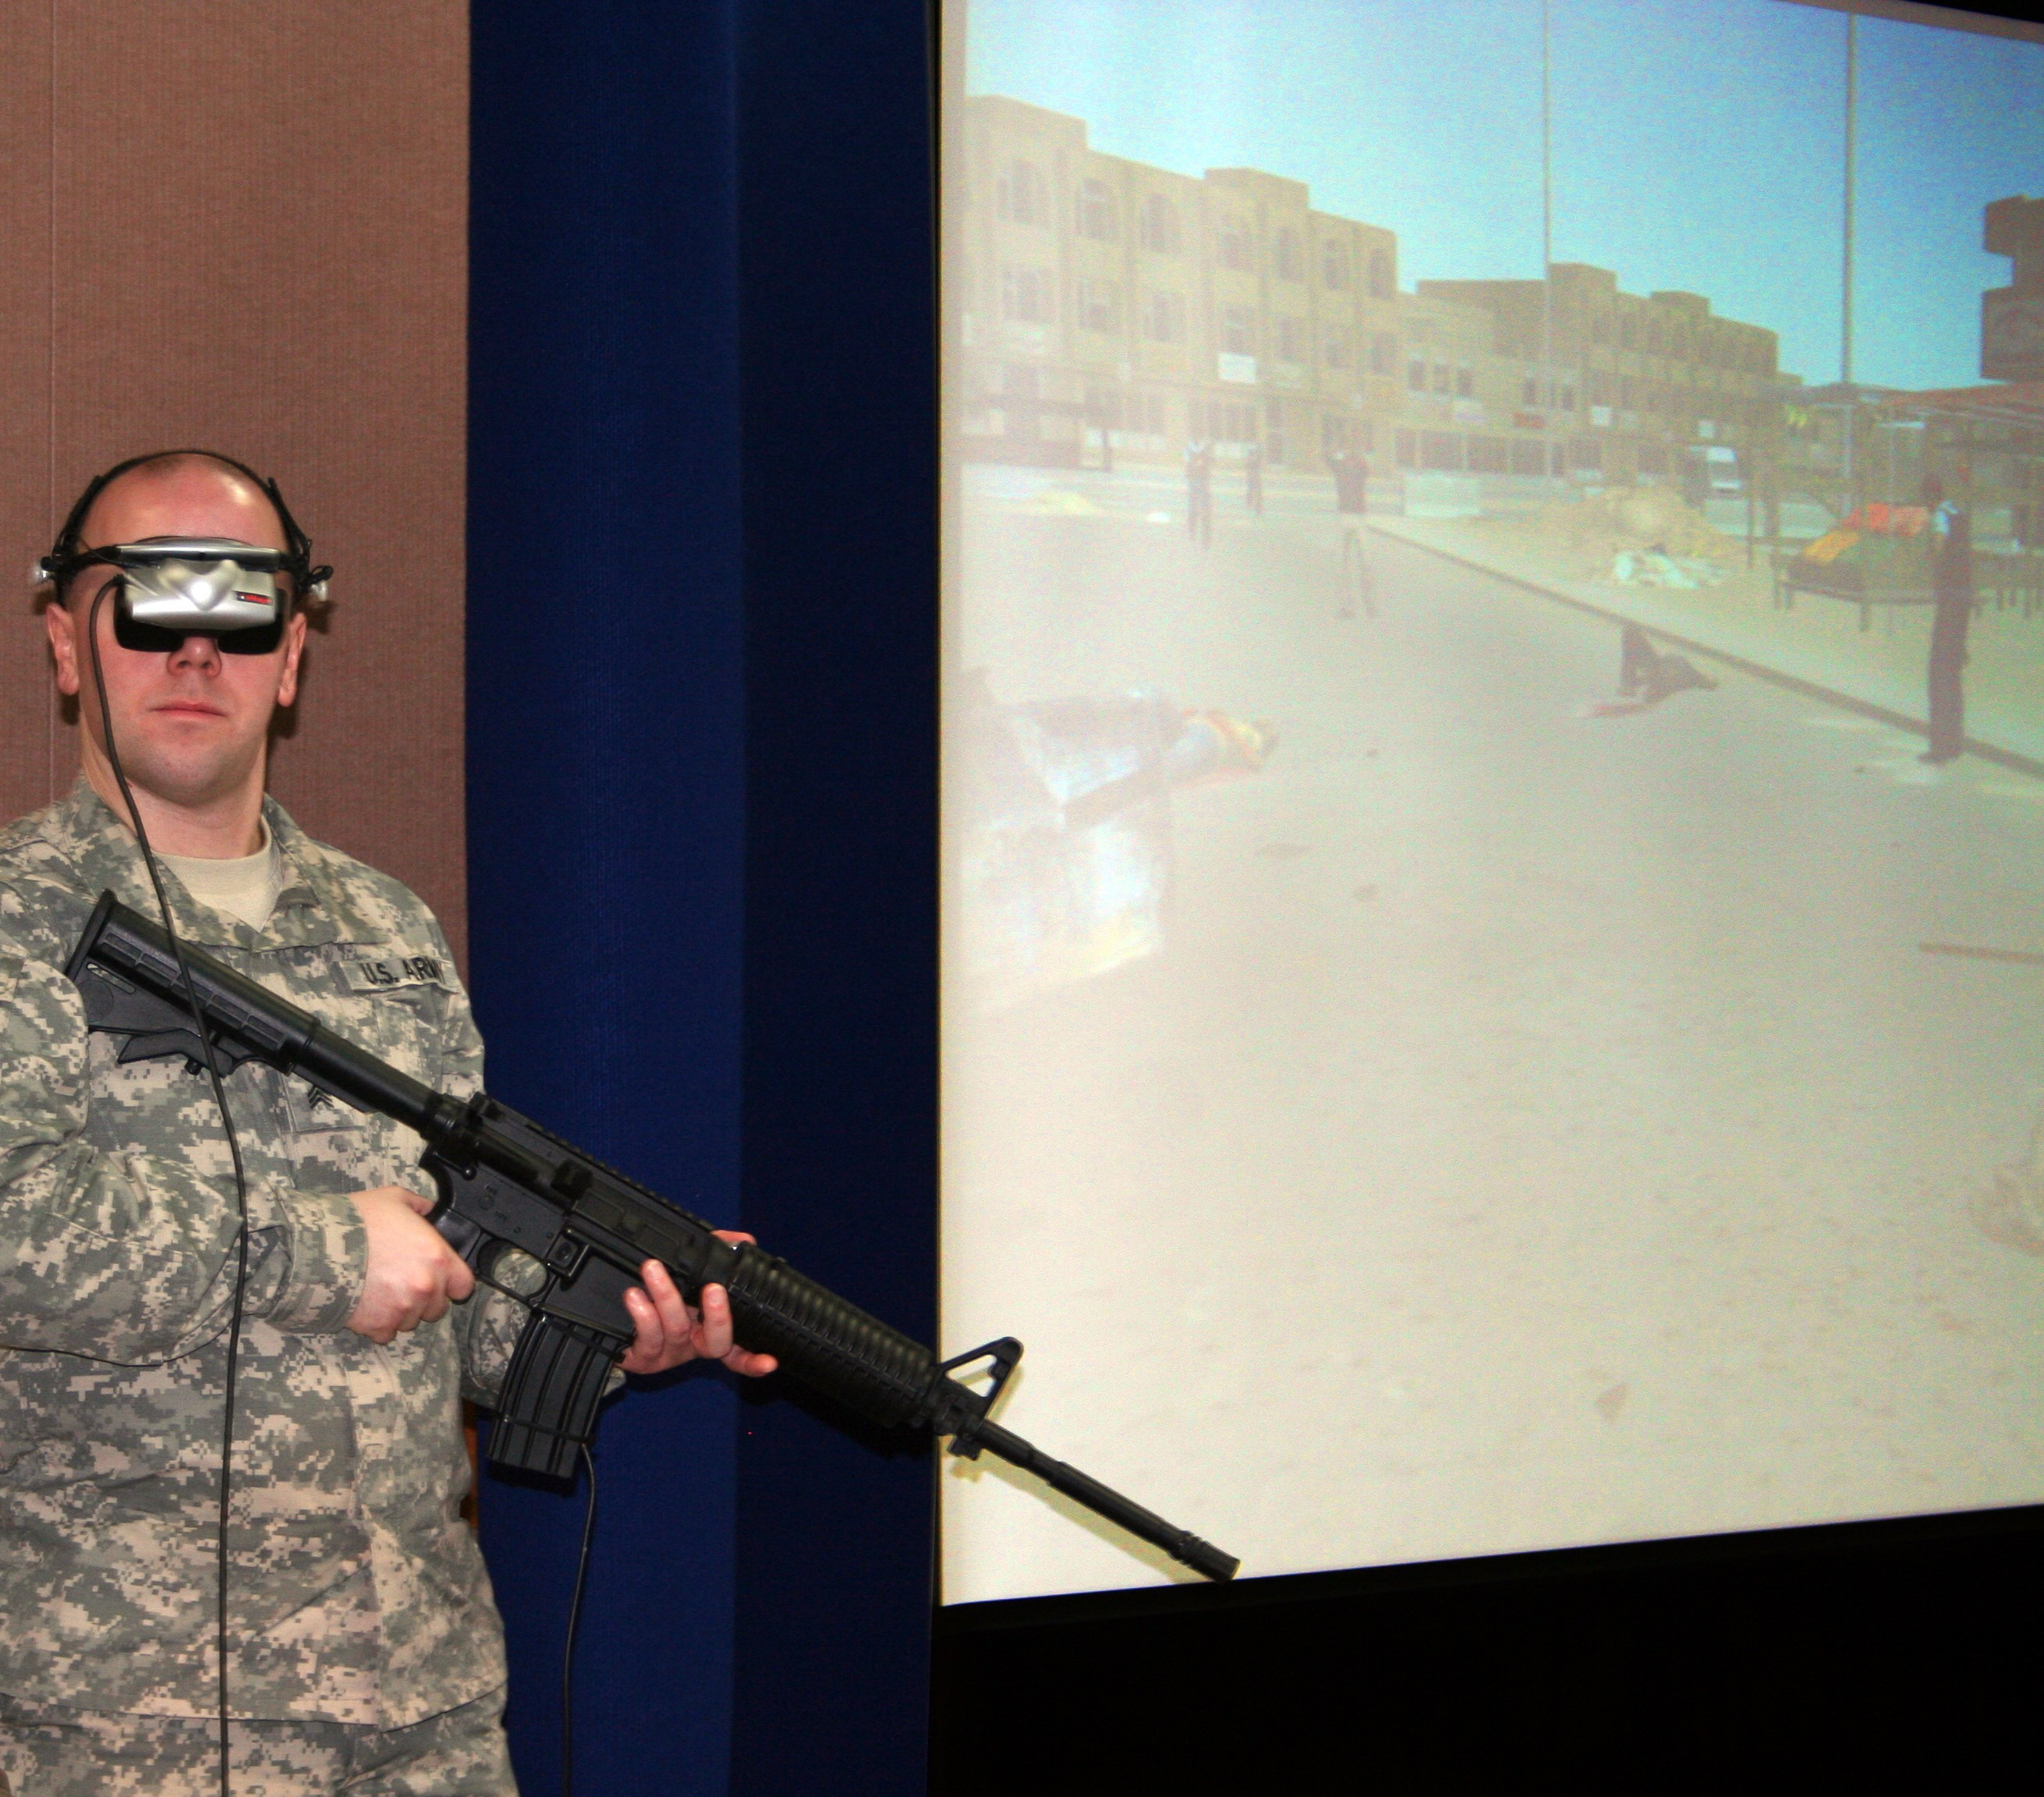 Virtual Reality Exposure Therapy to combat PTSD | Article | The ...